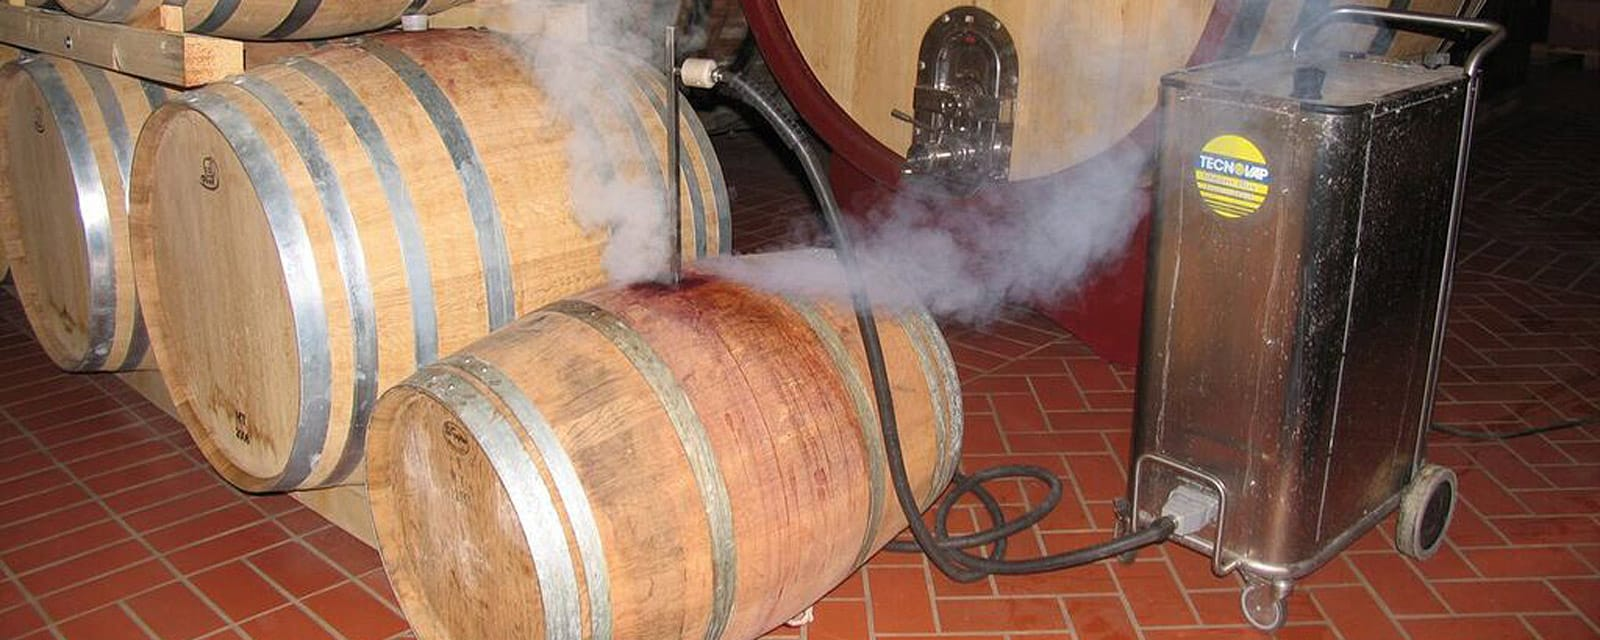 "steam vapour wine barrel cleaning machine"" alt=""high pressure steam exits the machine as dry vapour and is the most effective way to sanitise wine barrels"